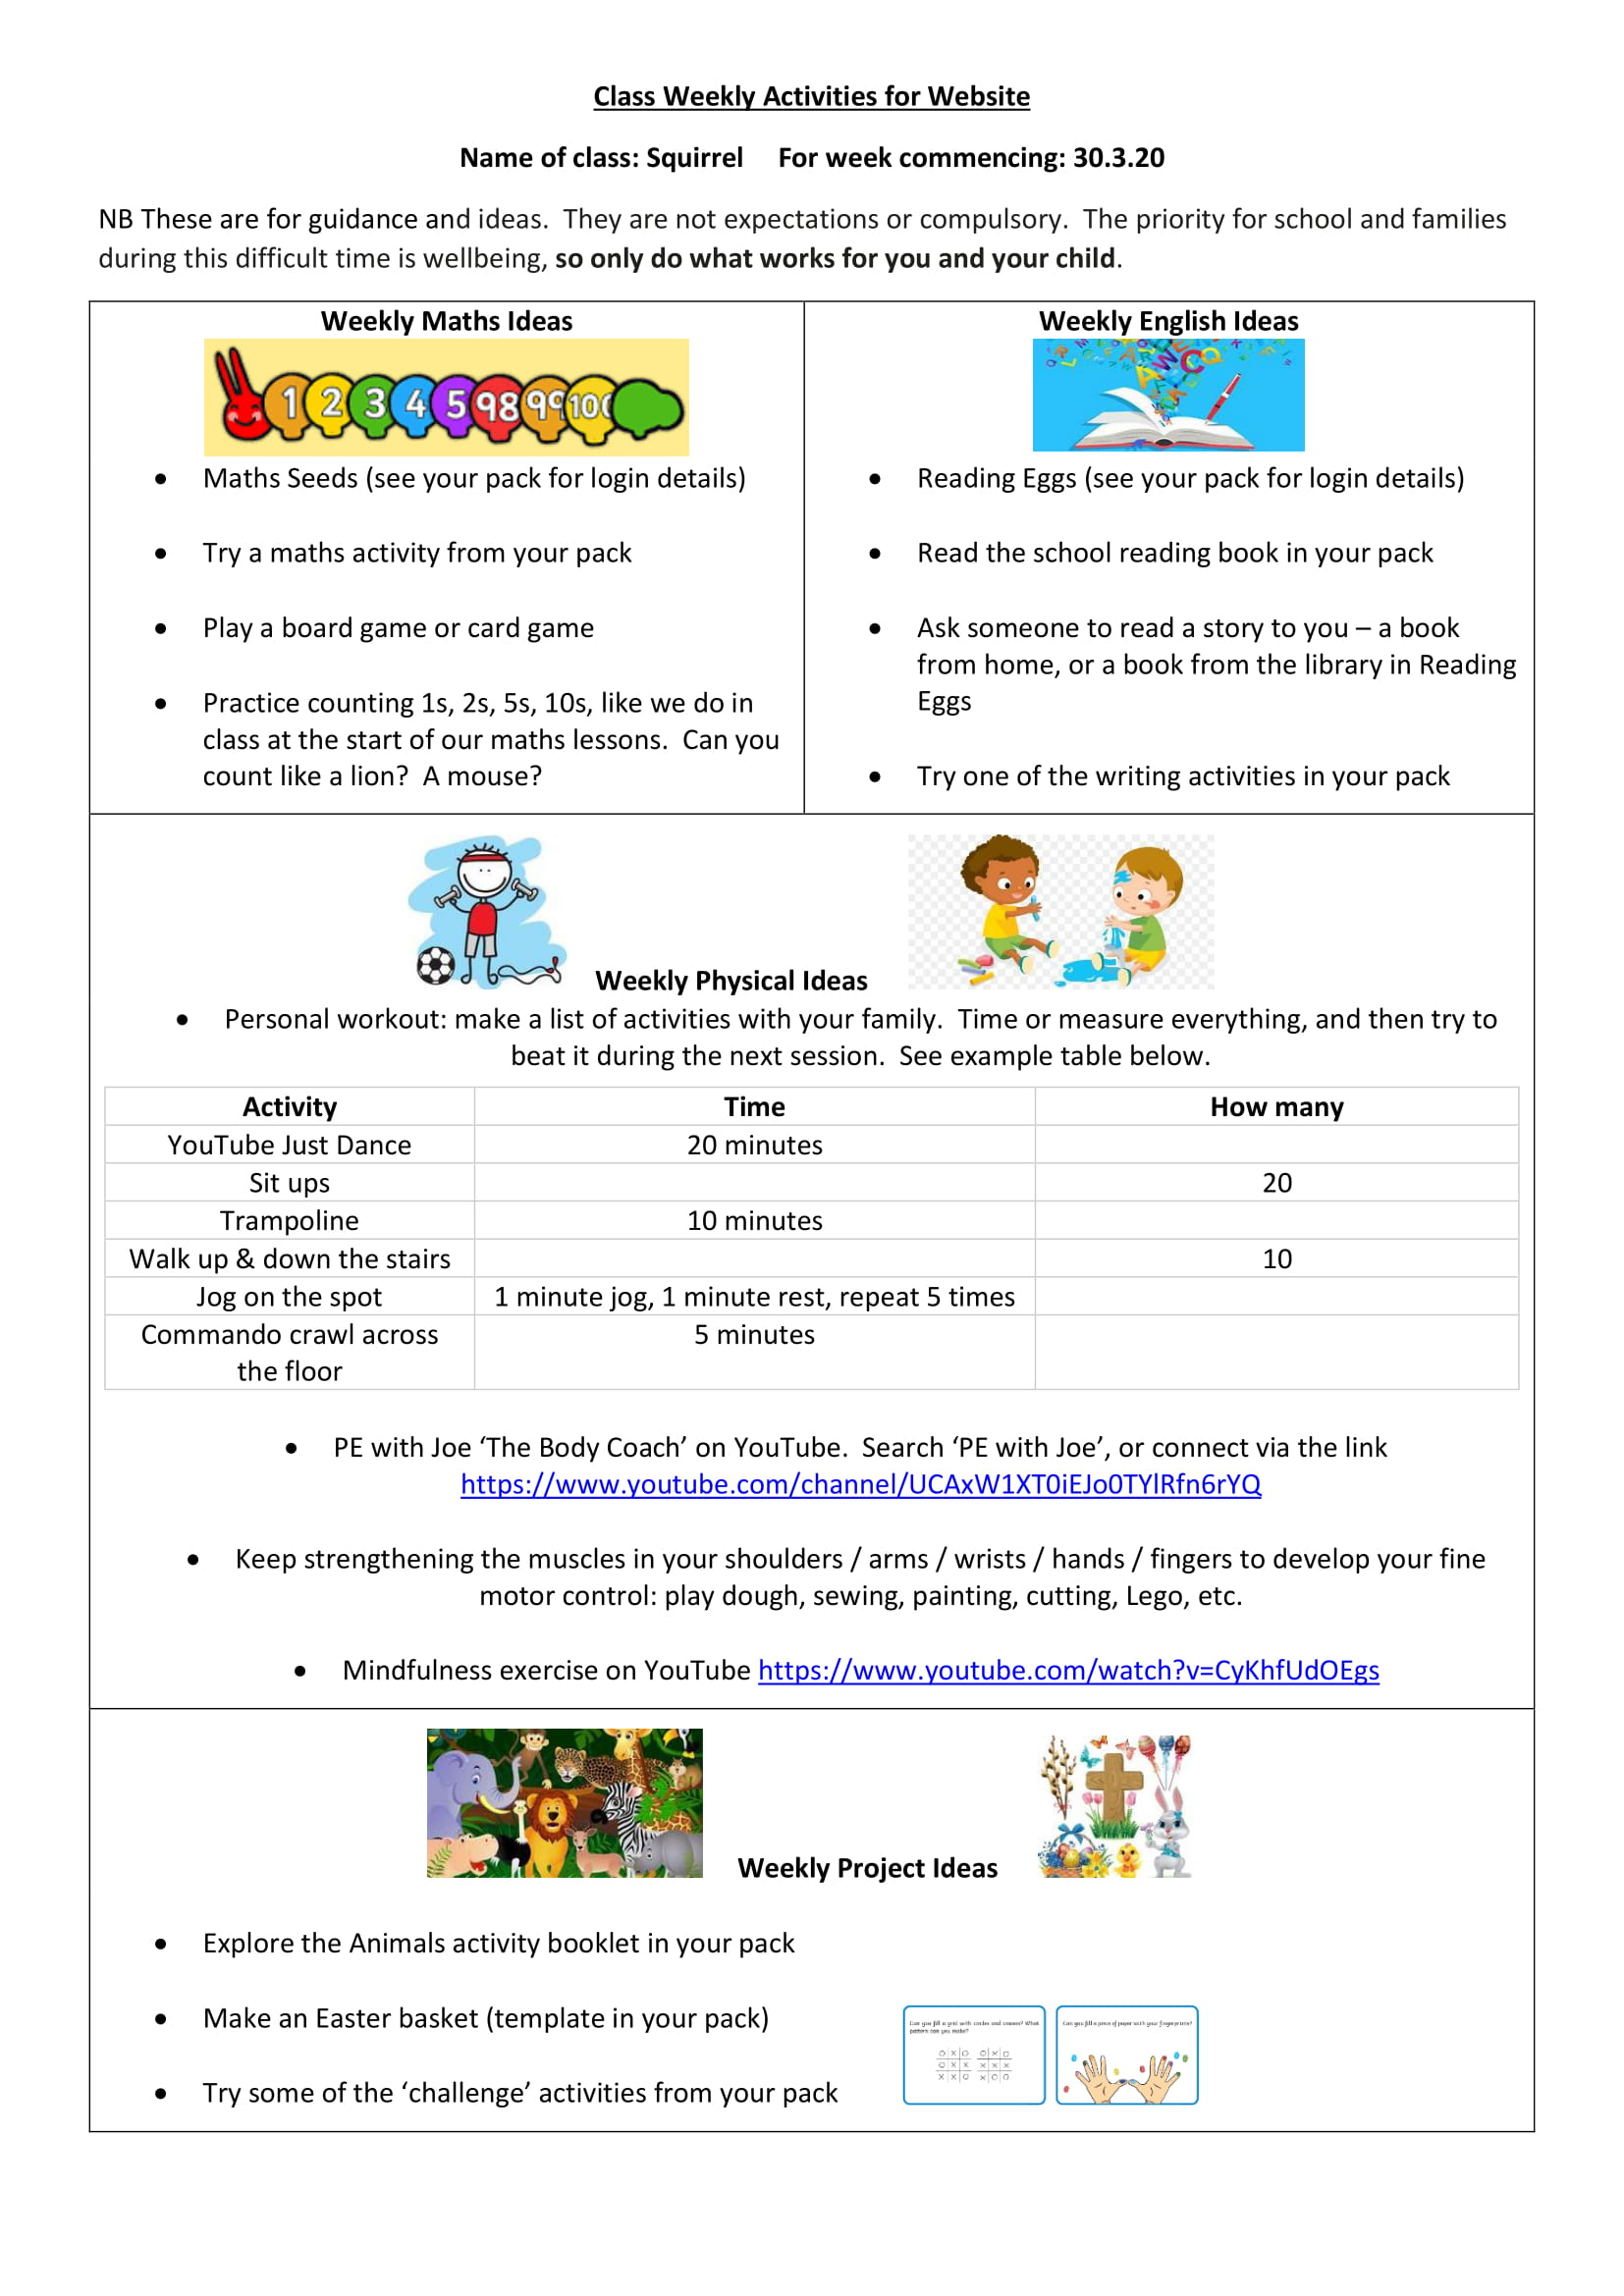 Home Learning And Class Activities